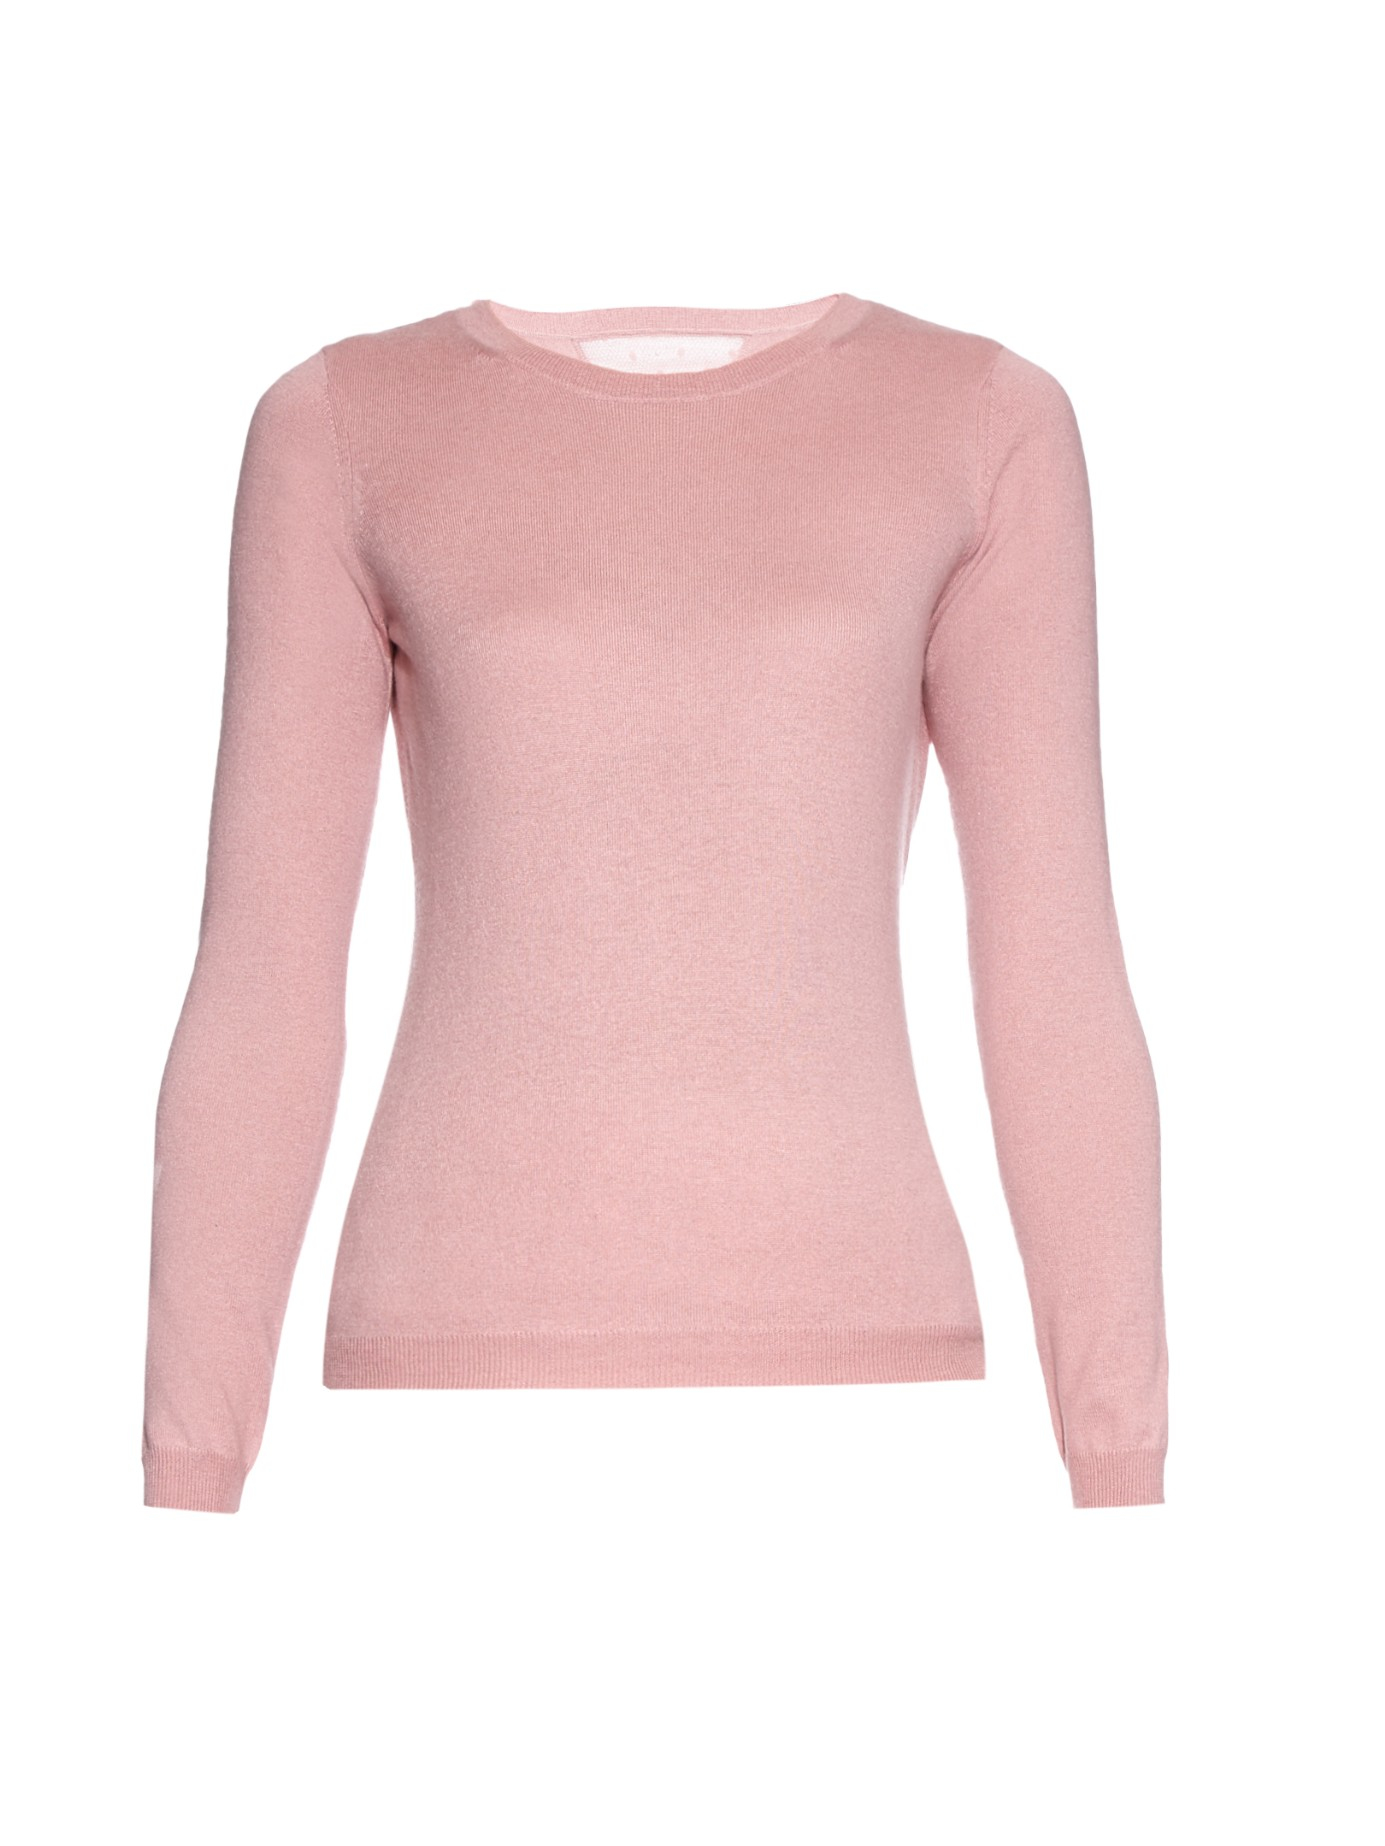 Red valentino Crew-neck Cashmere And Silk-blend Sweater in Pink | Lyst